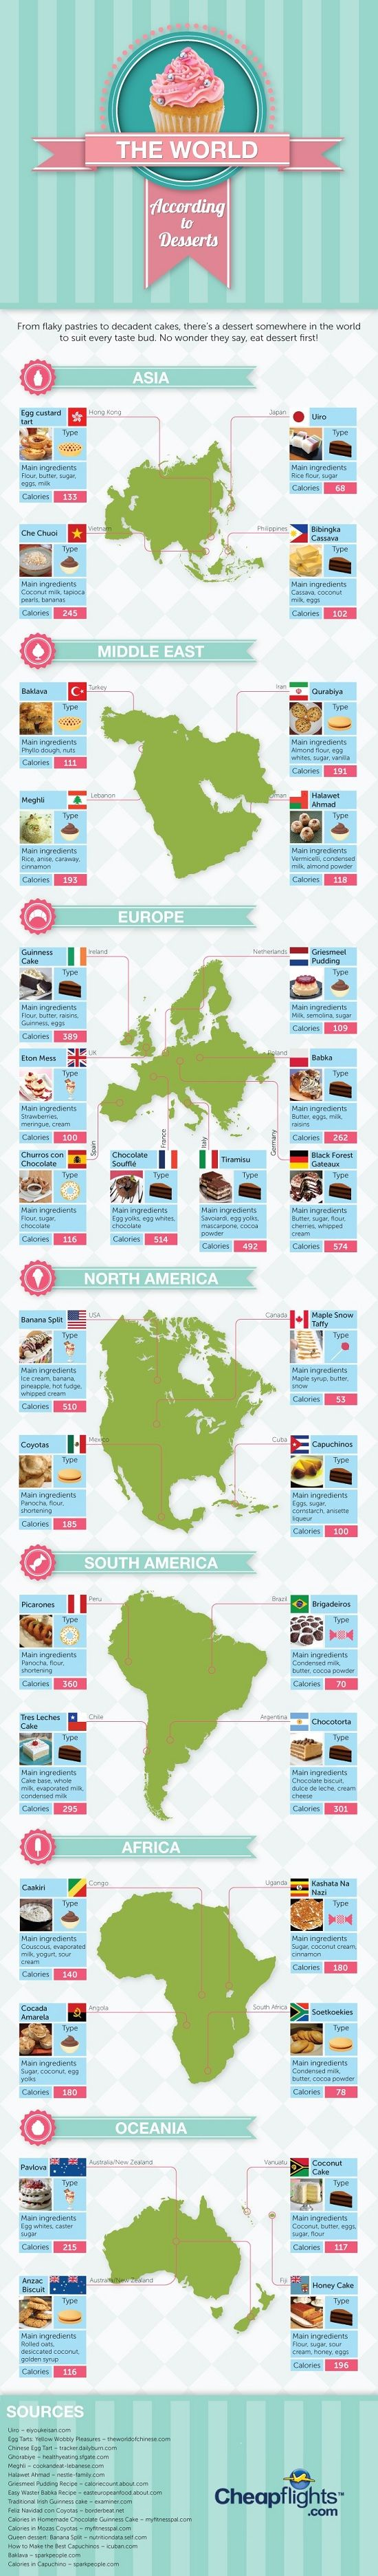 #INFOgraphic > World Map of Desserts: Welcome to the world of desserts. Get to know the most tempting and delicious tuck around the world. Our journey starts from Hong Kong and ends to Fiji island. Start searching for recipes.  > http://infographicsmania.com/world-map-of-desserts/?utm_source=Pinterest&utm_medium=INFOGRAPHICSMANIA&utm_campaign=SNAP